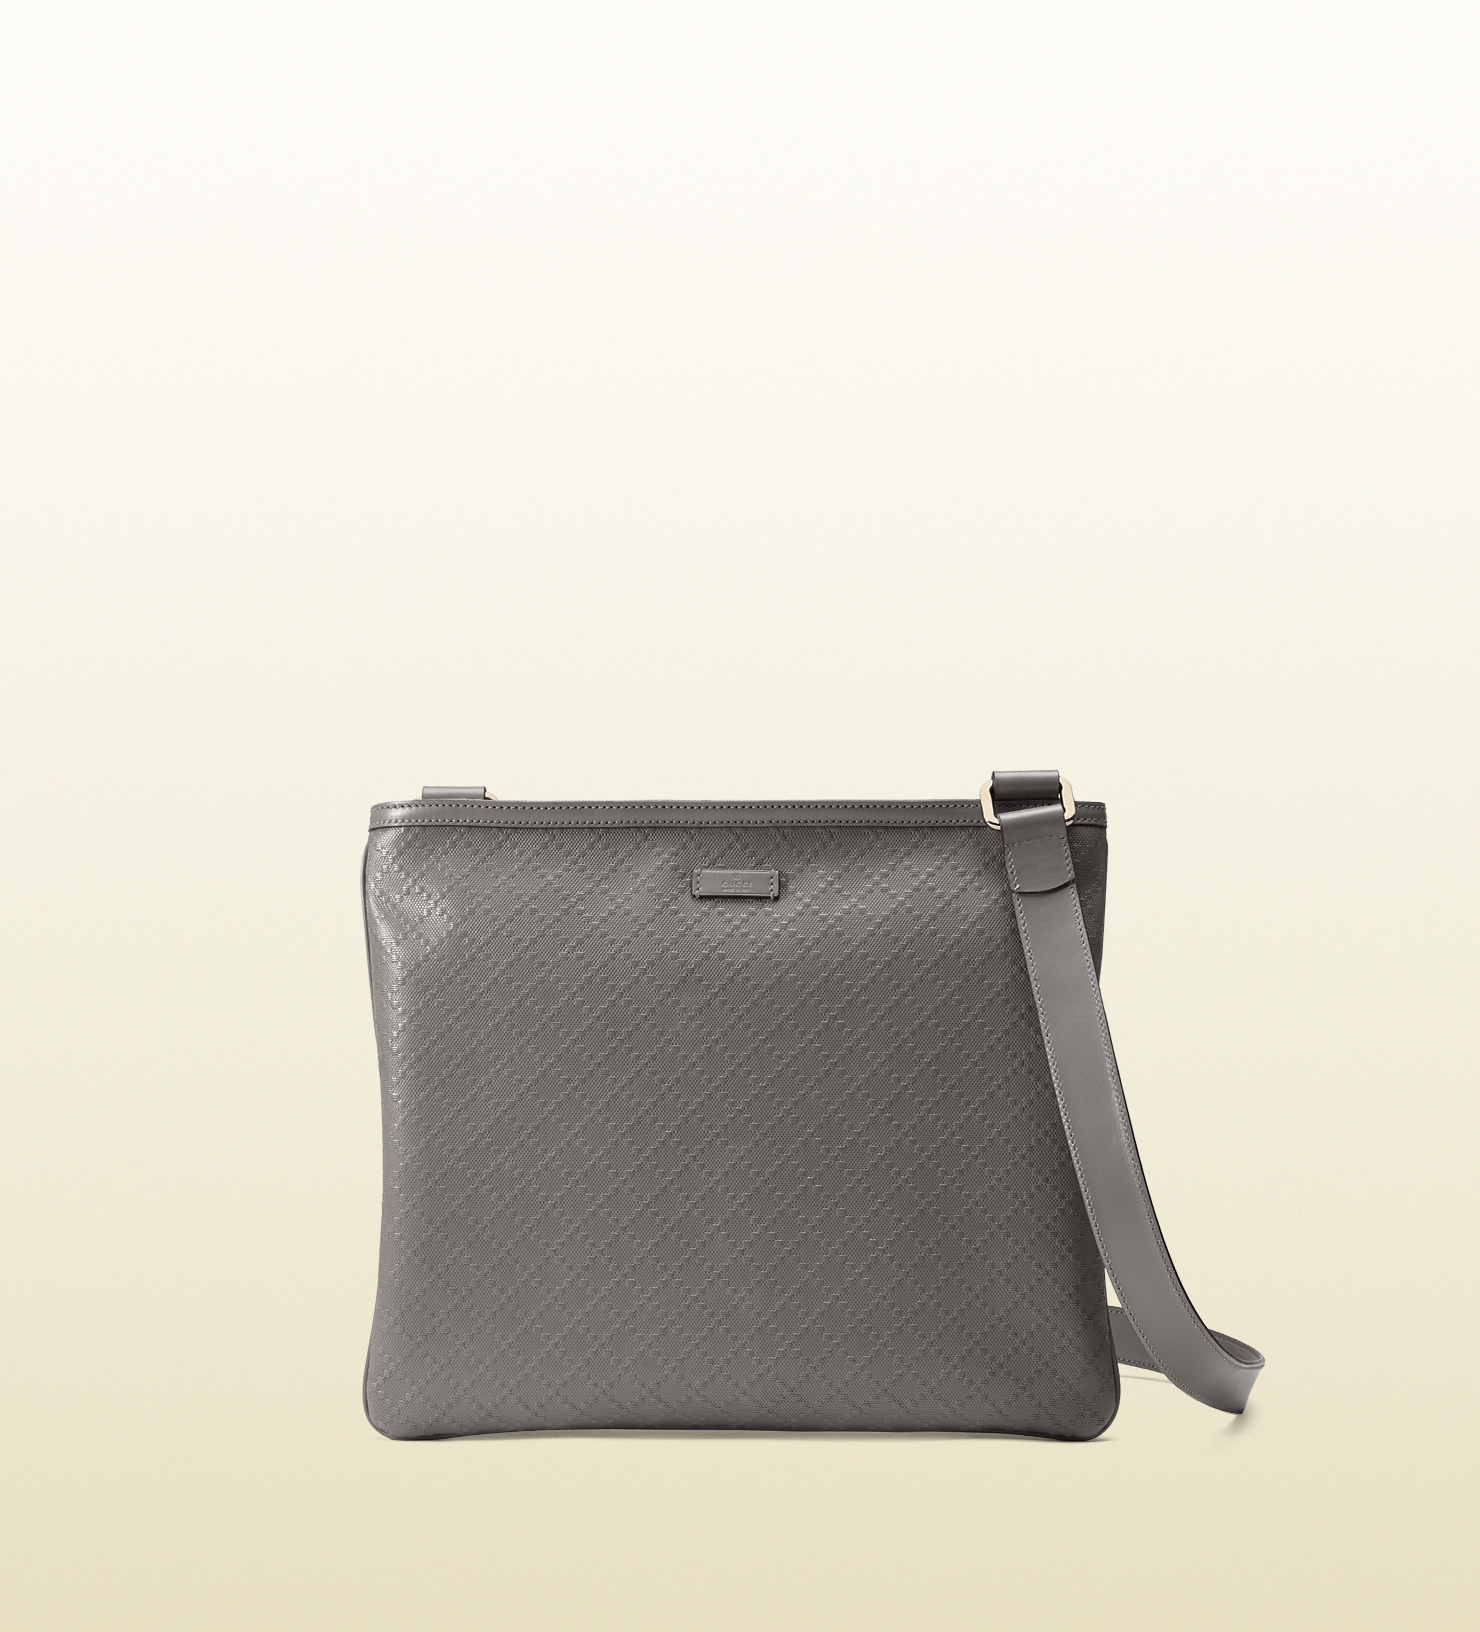 767a6238847d Lyst - Gucci Bright Diamante Leather Messenger Bag in Gray for Men